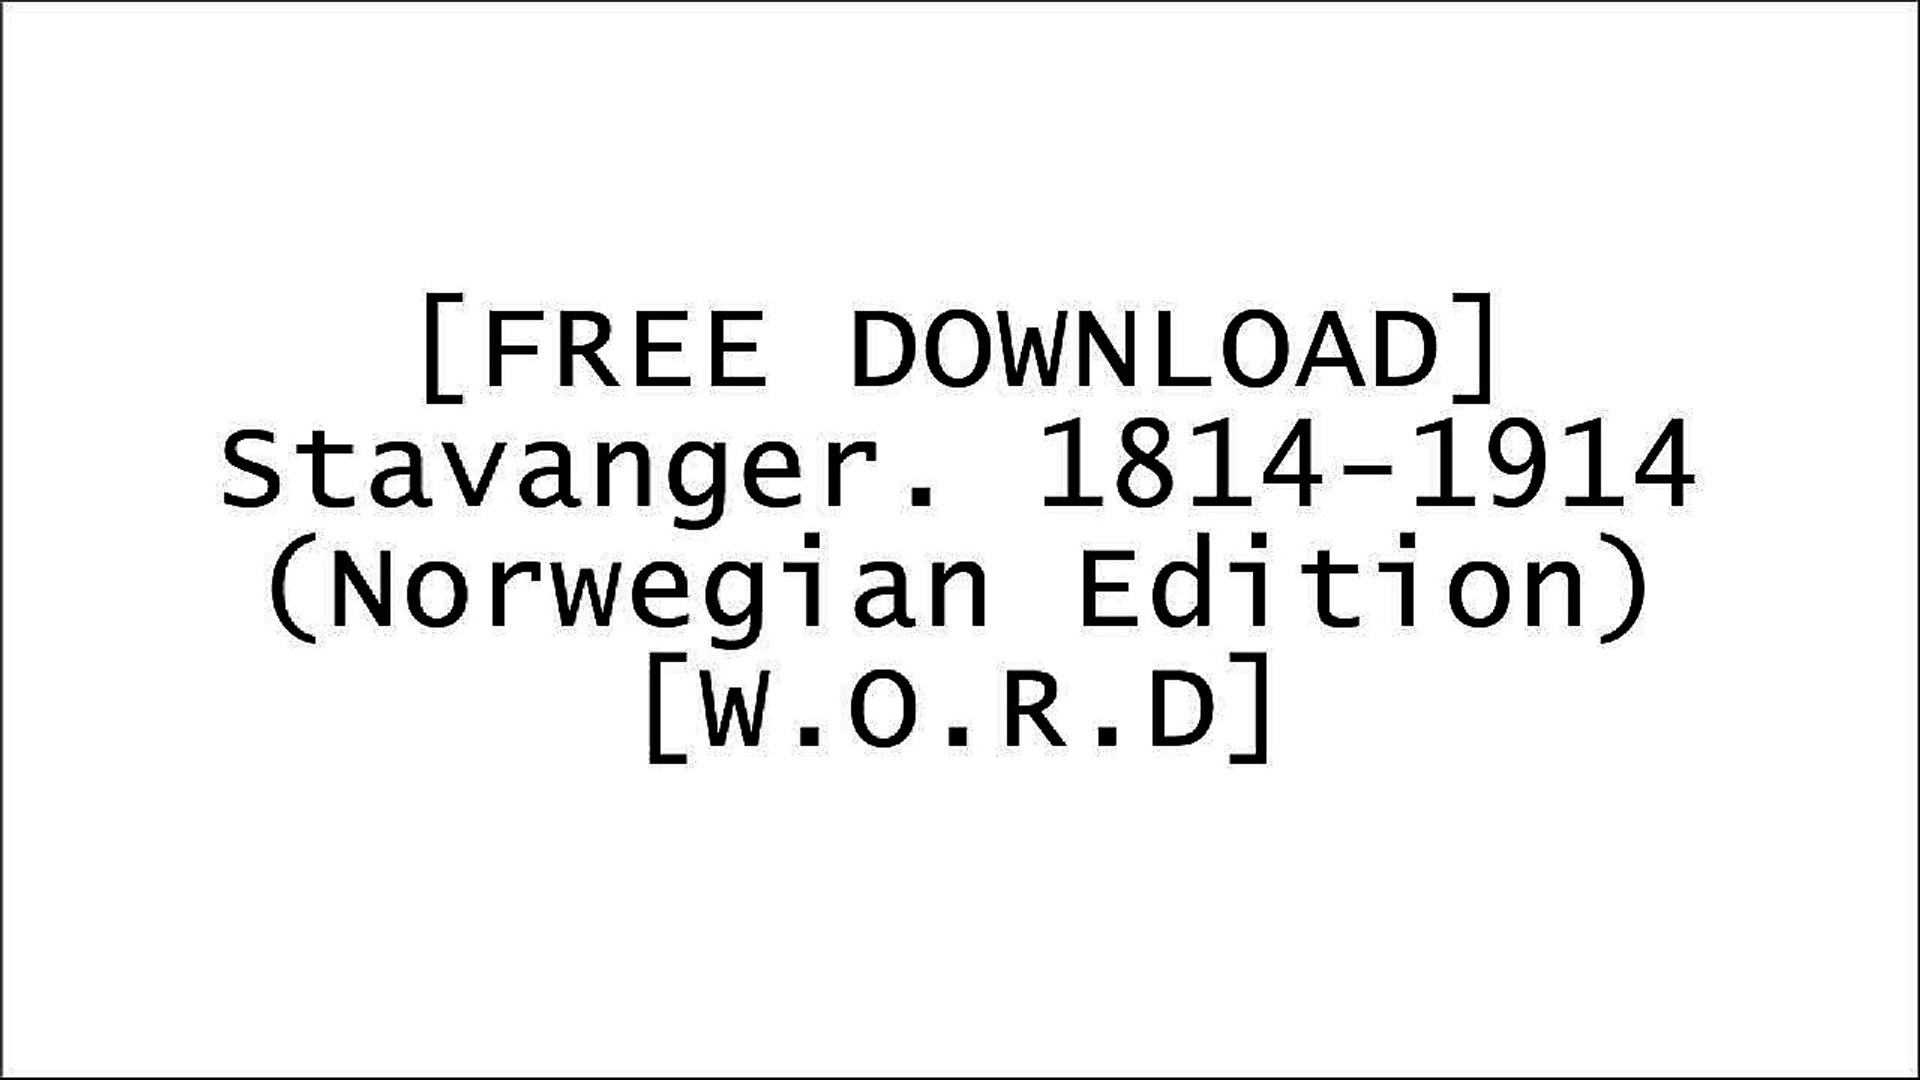 [KiKy0.[F.r.e.e] [D.o.w.n.l.o.a.d]] Stavanger. 1814-1914 (Norwegian Edition) by Unknown [R.A.R]